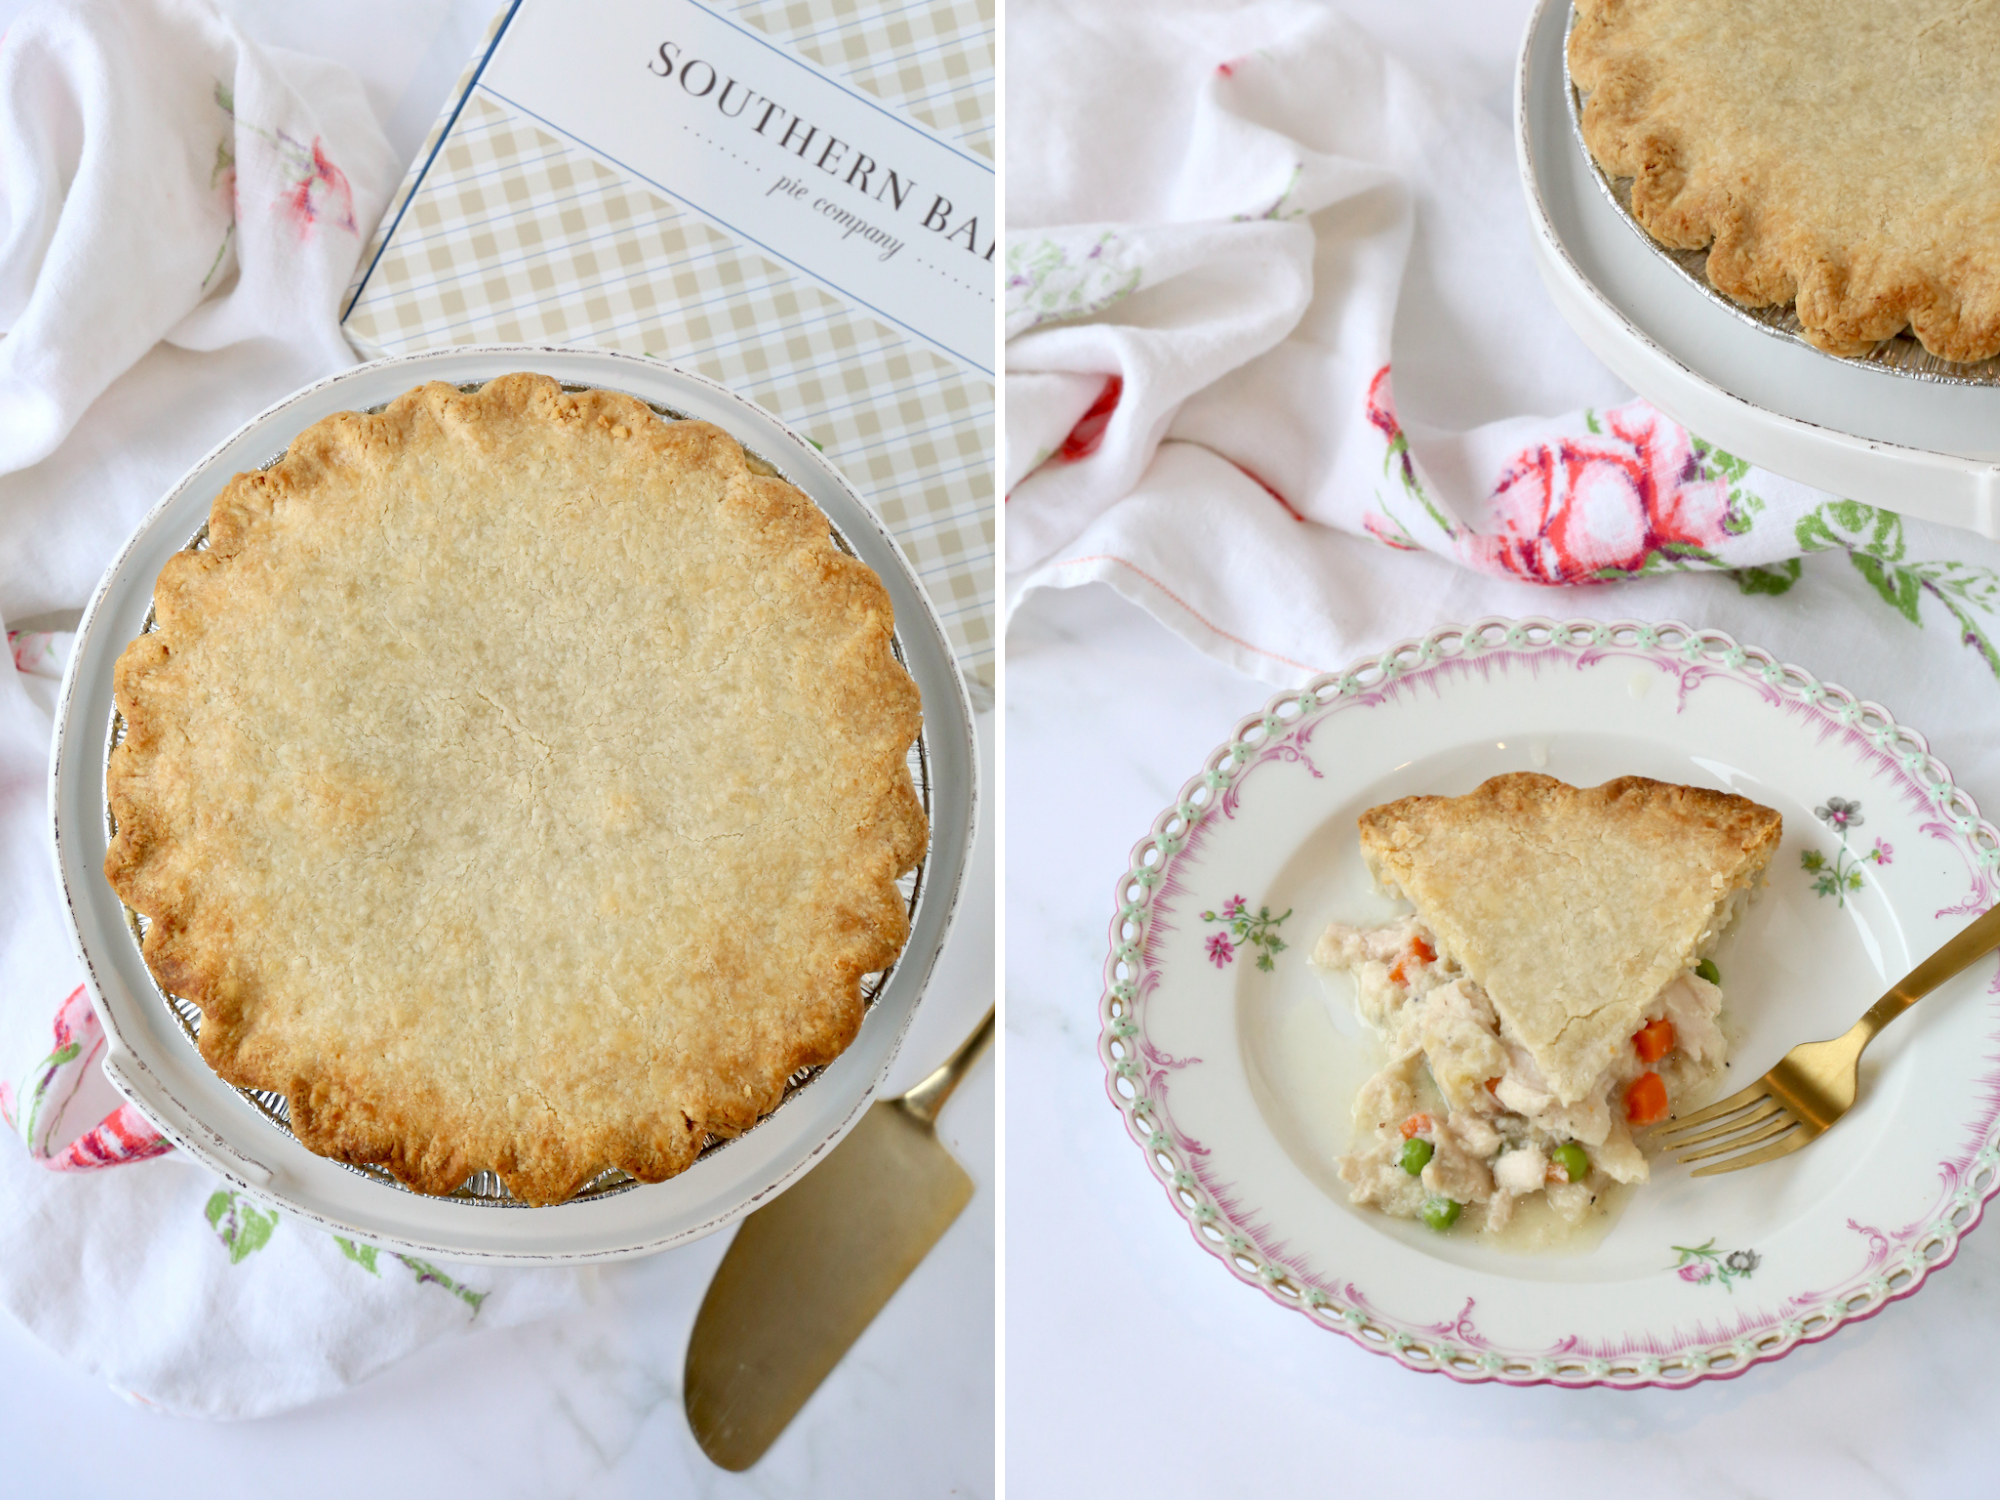 Southern Baked Chicken Pot Pie